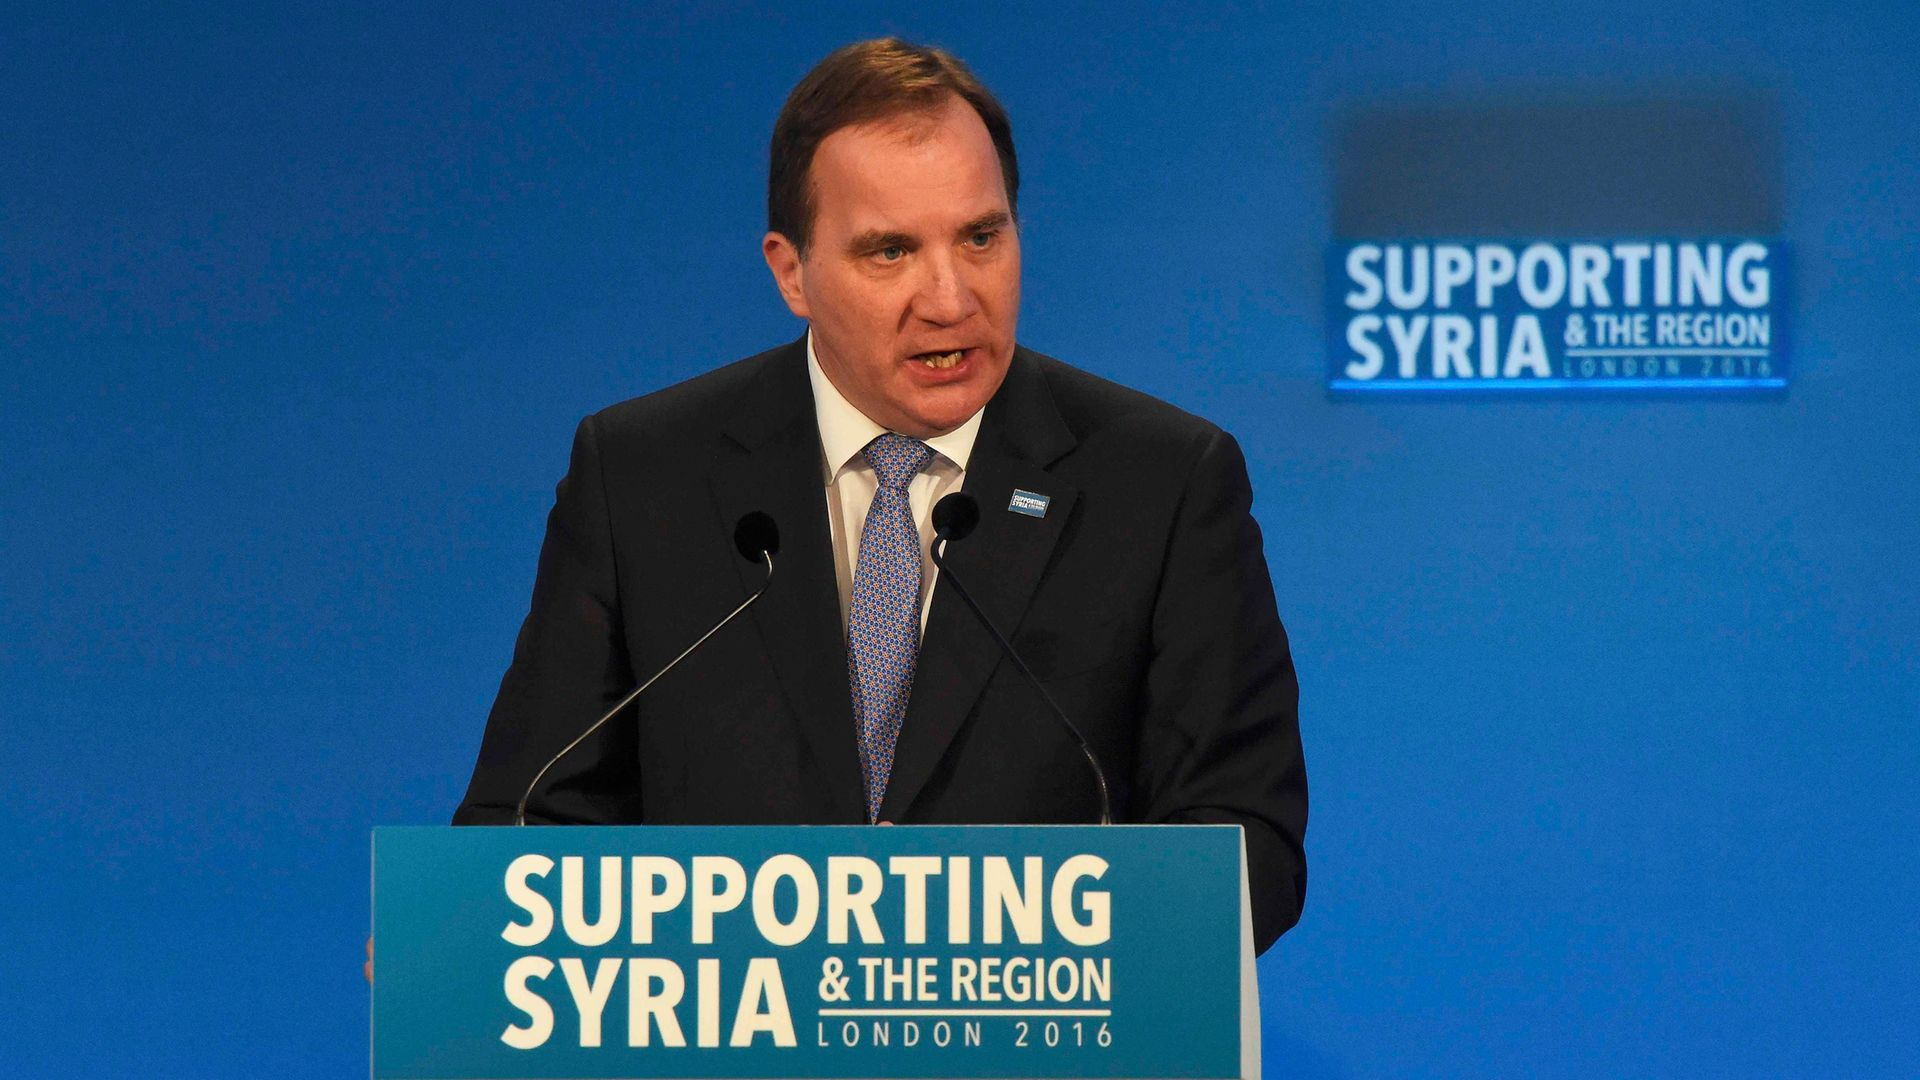 Sweden's Prime Minister Stefan Lofven during the 'Supporting Syria and the Region' conference at the Queen Elizabeth II Conference Centre in London. - Credit: PA